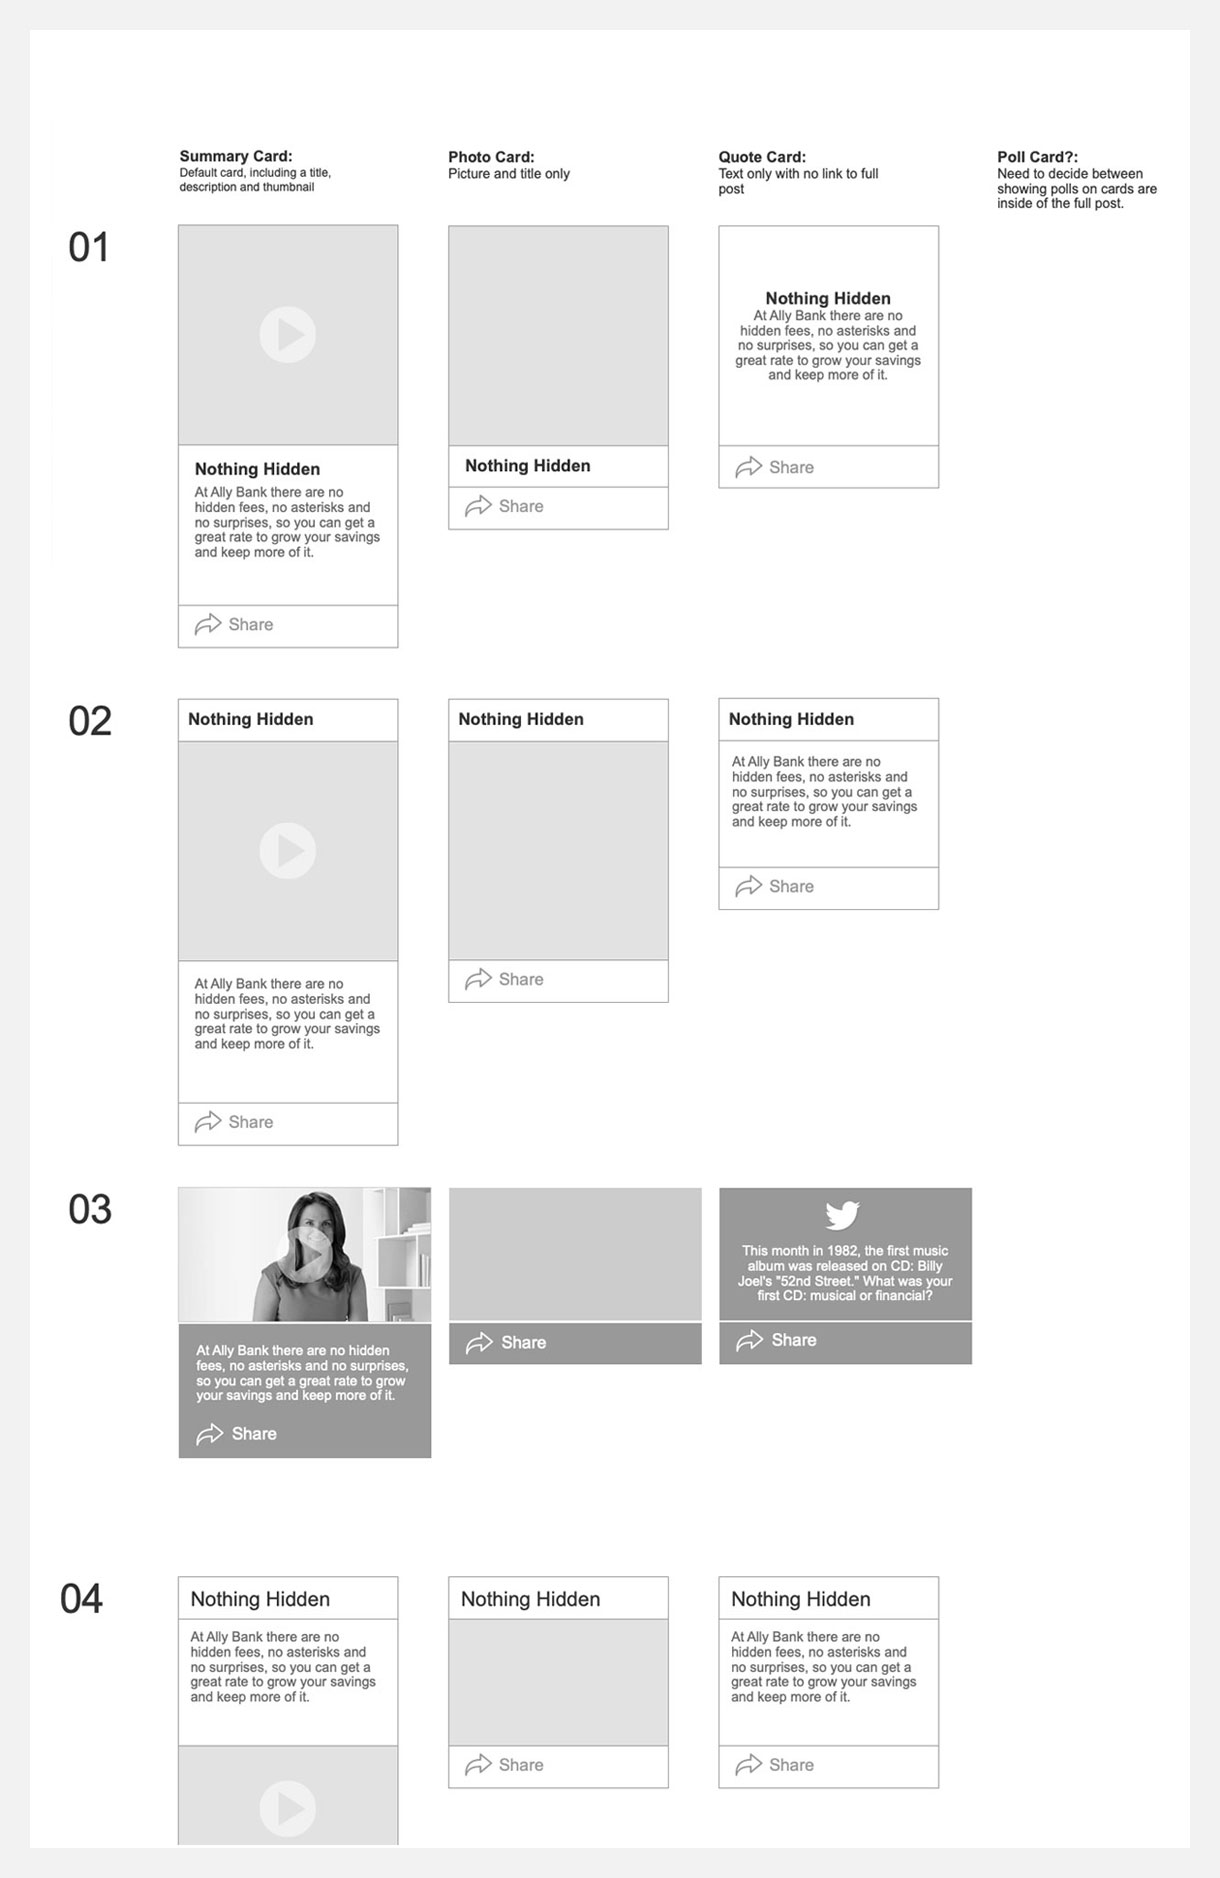 Low fidelity wireframes  helped provide a basis to rapidly generate and discuss ideas in the early stages of the project.